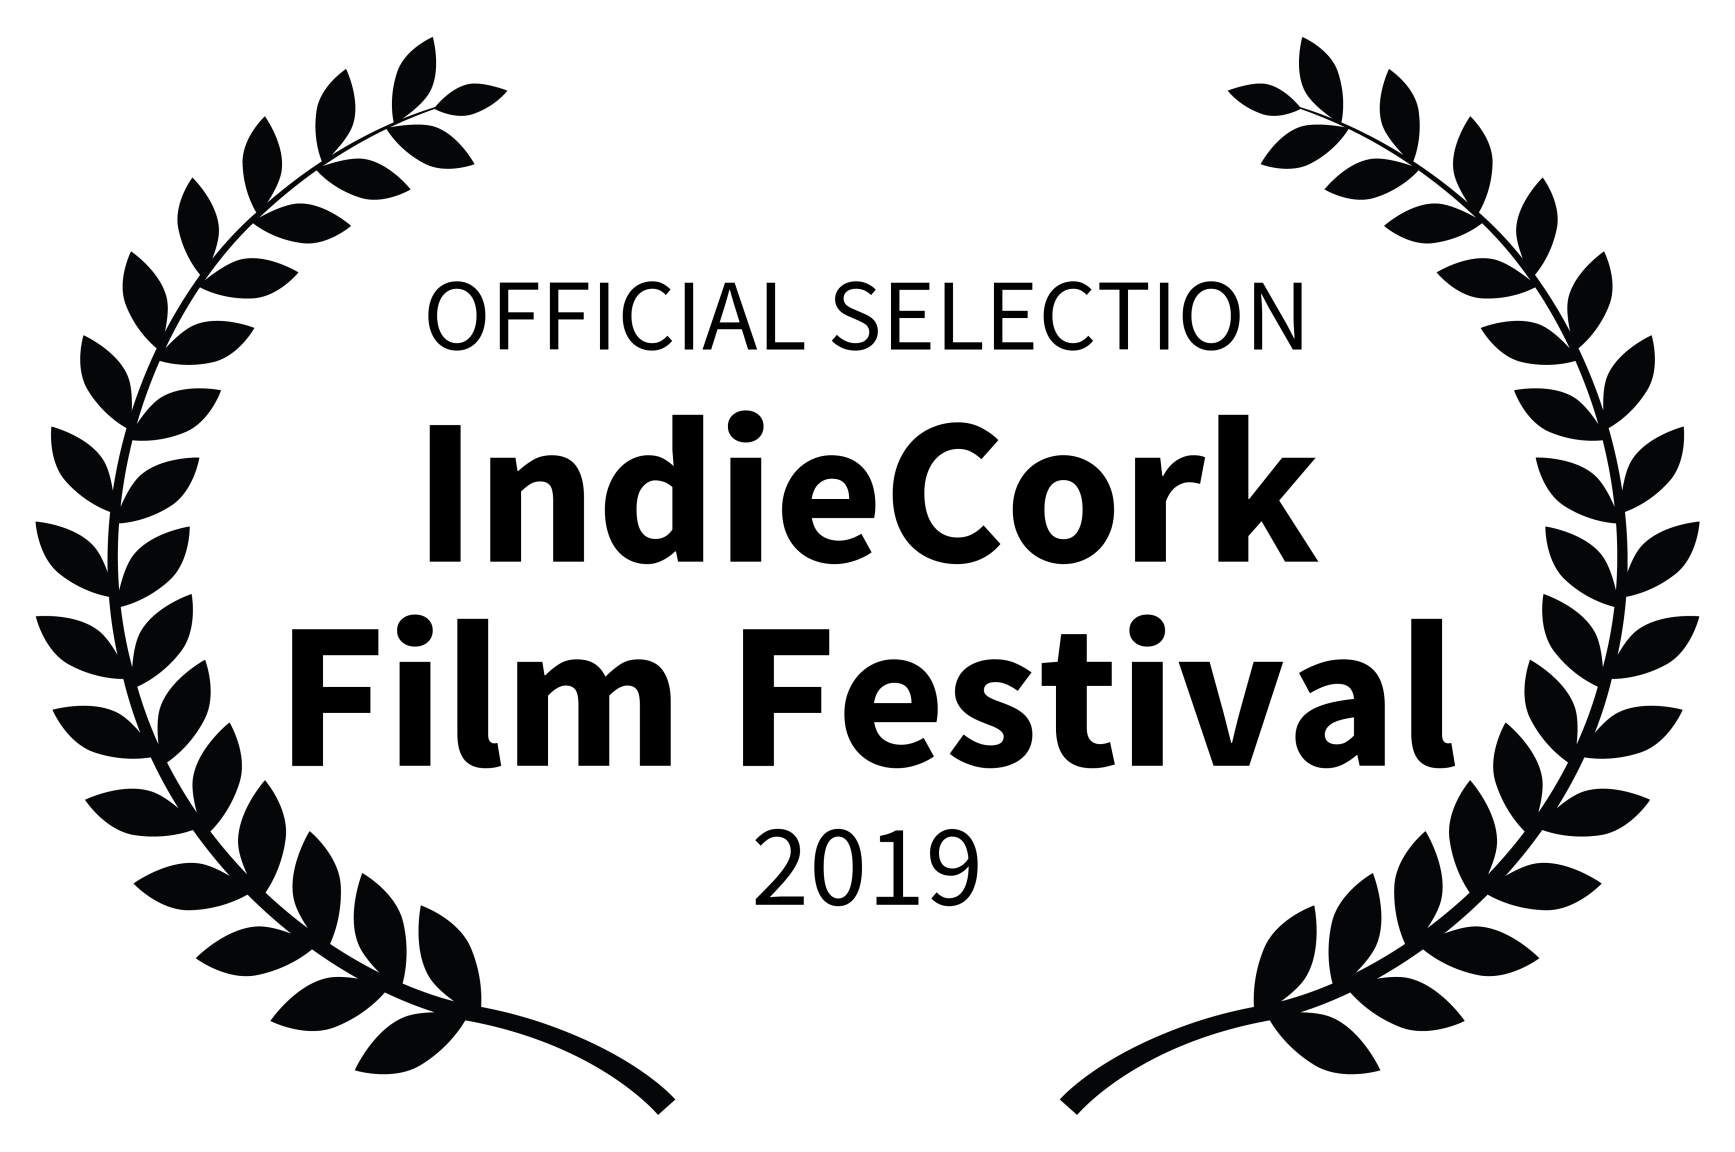 OFFICIAL SELECTION - IndieCork Film Festival - 2019